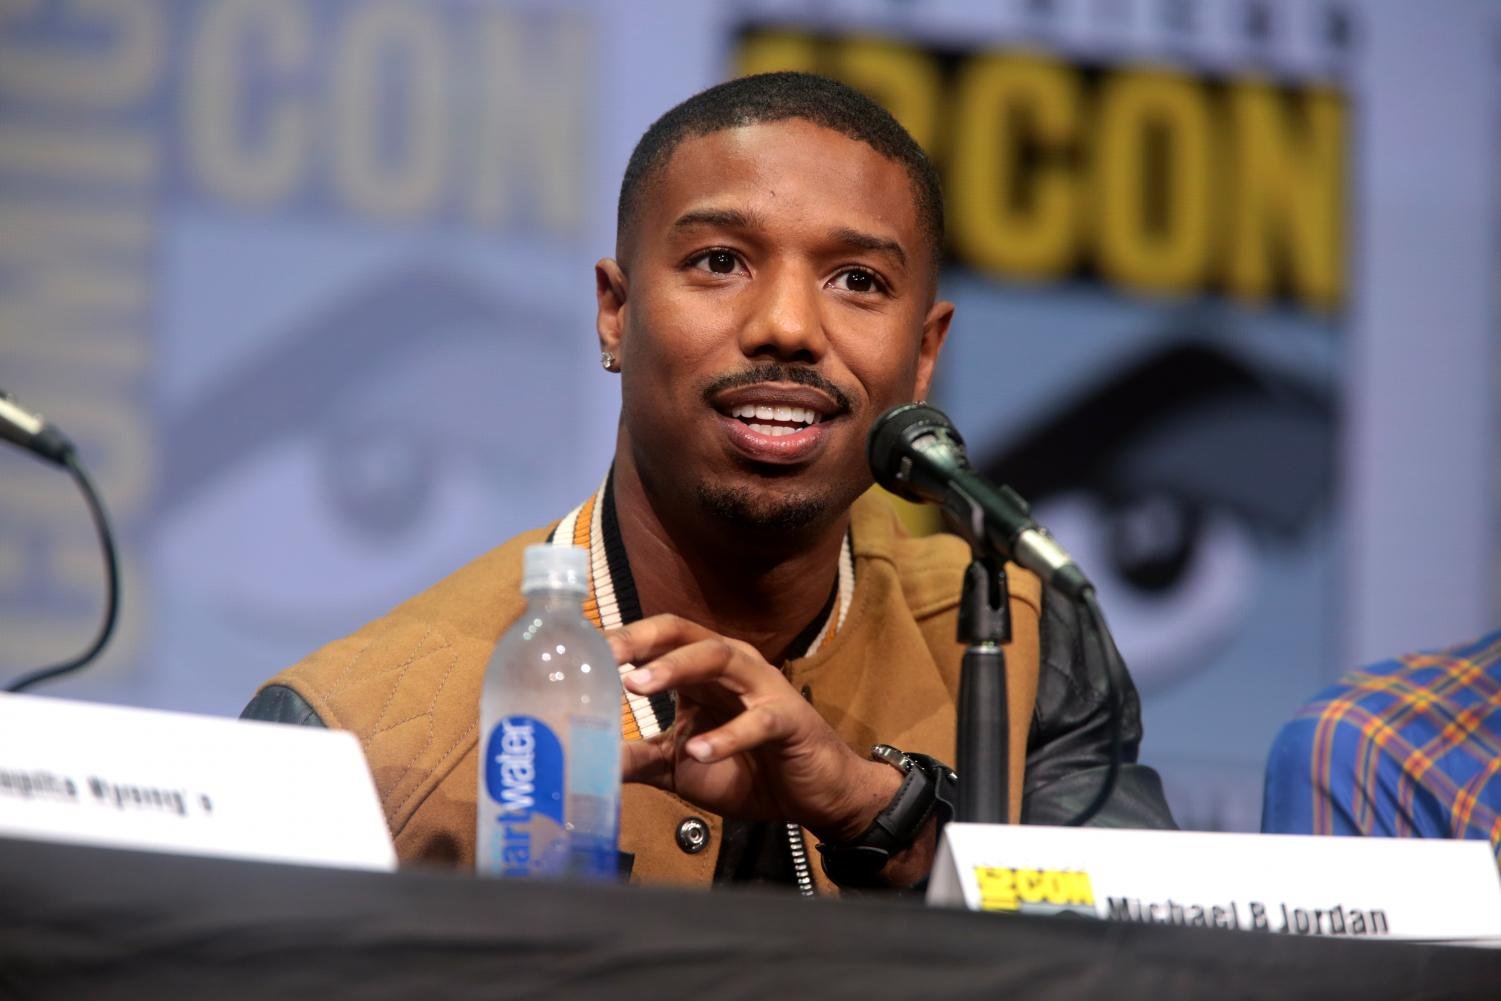 Michael B. Jordan speaking at the 2017 San Diego Comic Con International for